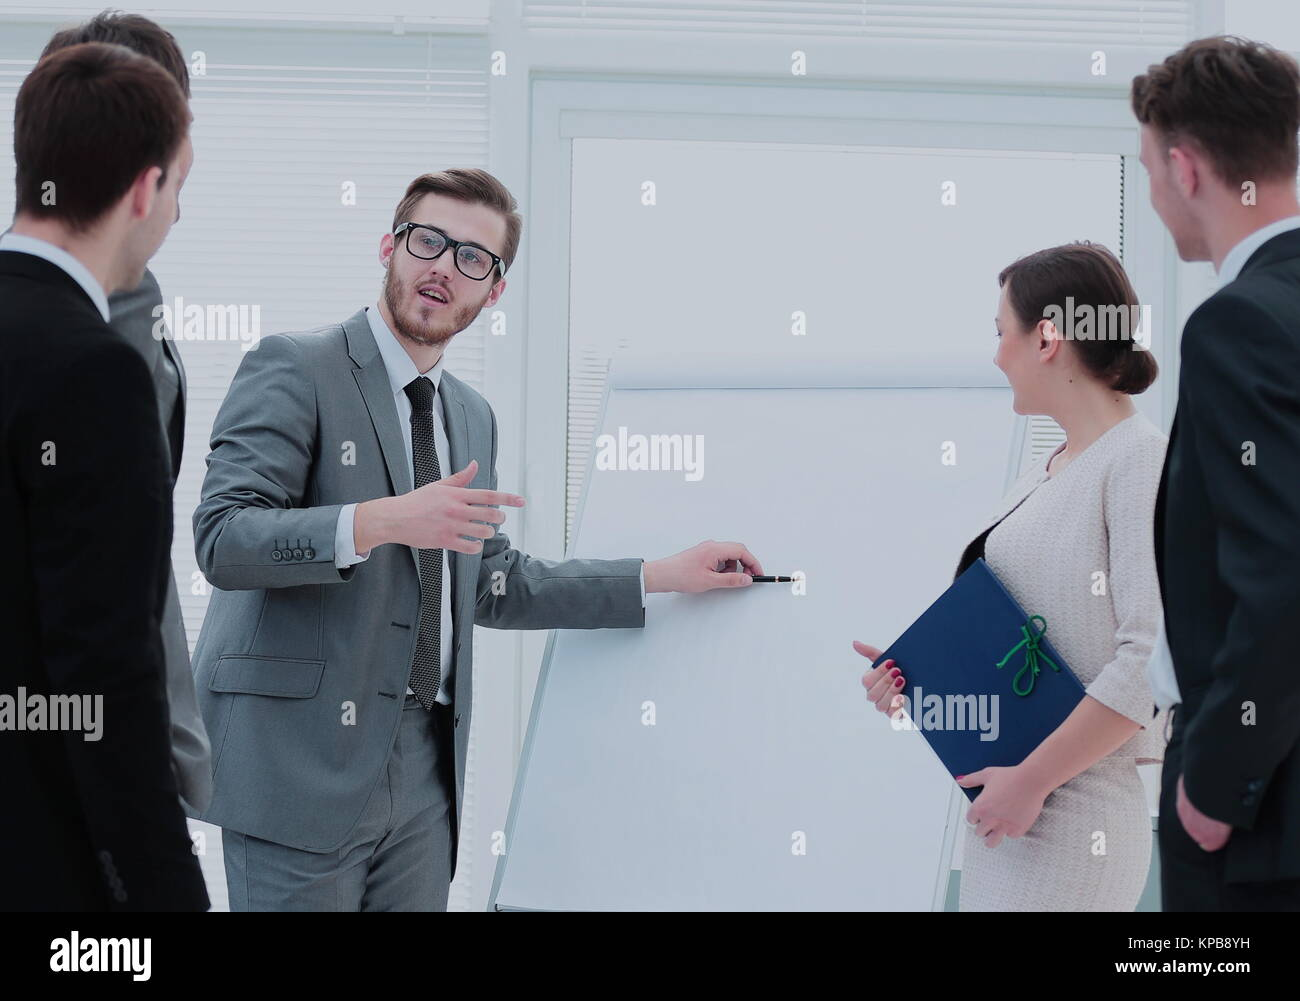 Business woman making a business presentation to a group Stock Photo